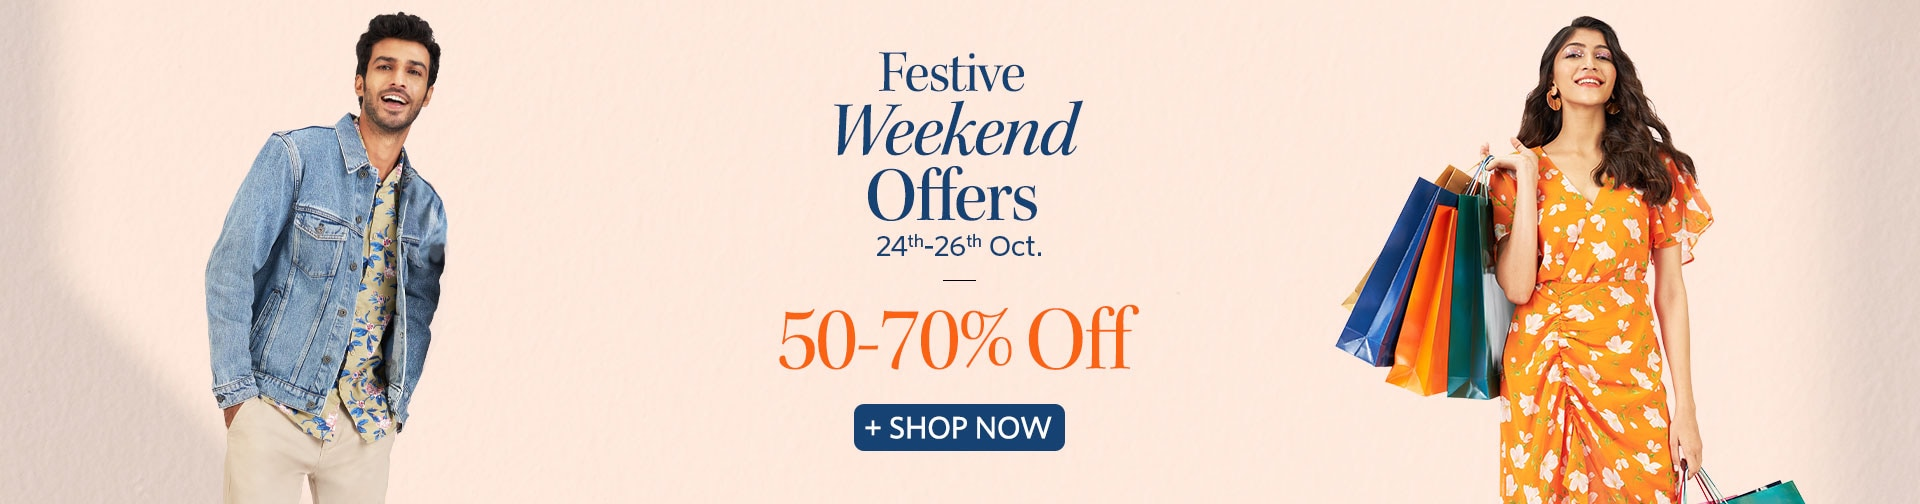 myntra.com - Festive Weekend Offers – Up to 70% discount